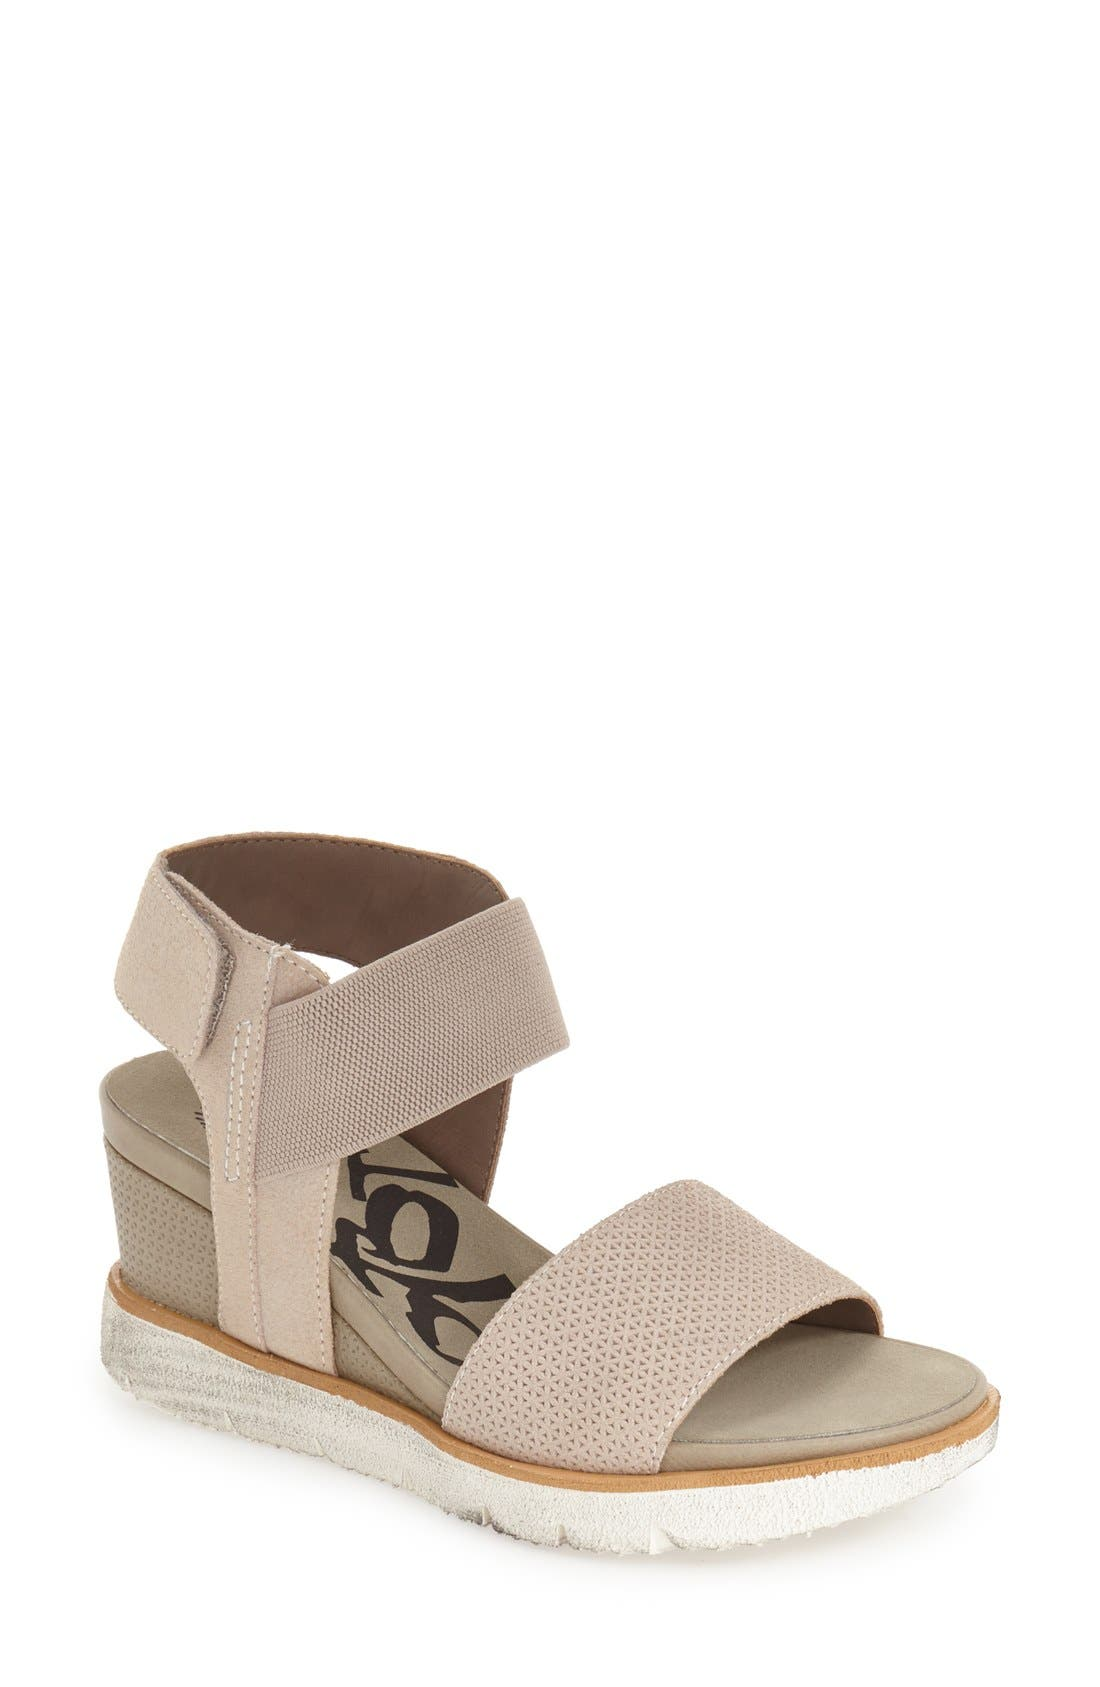 OTBT 'Cosmos' Wedge Sandal, Main, color, 020